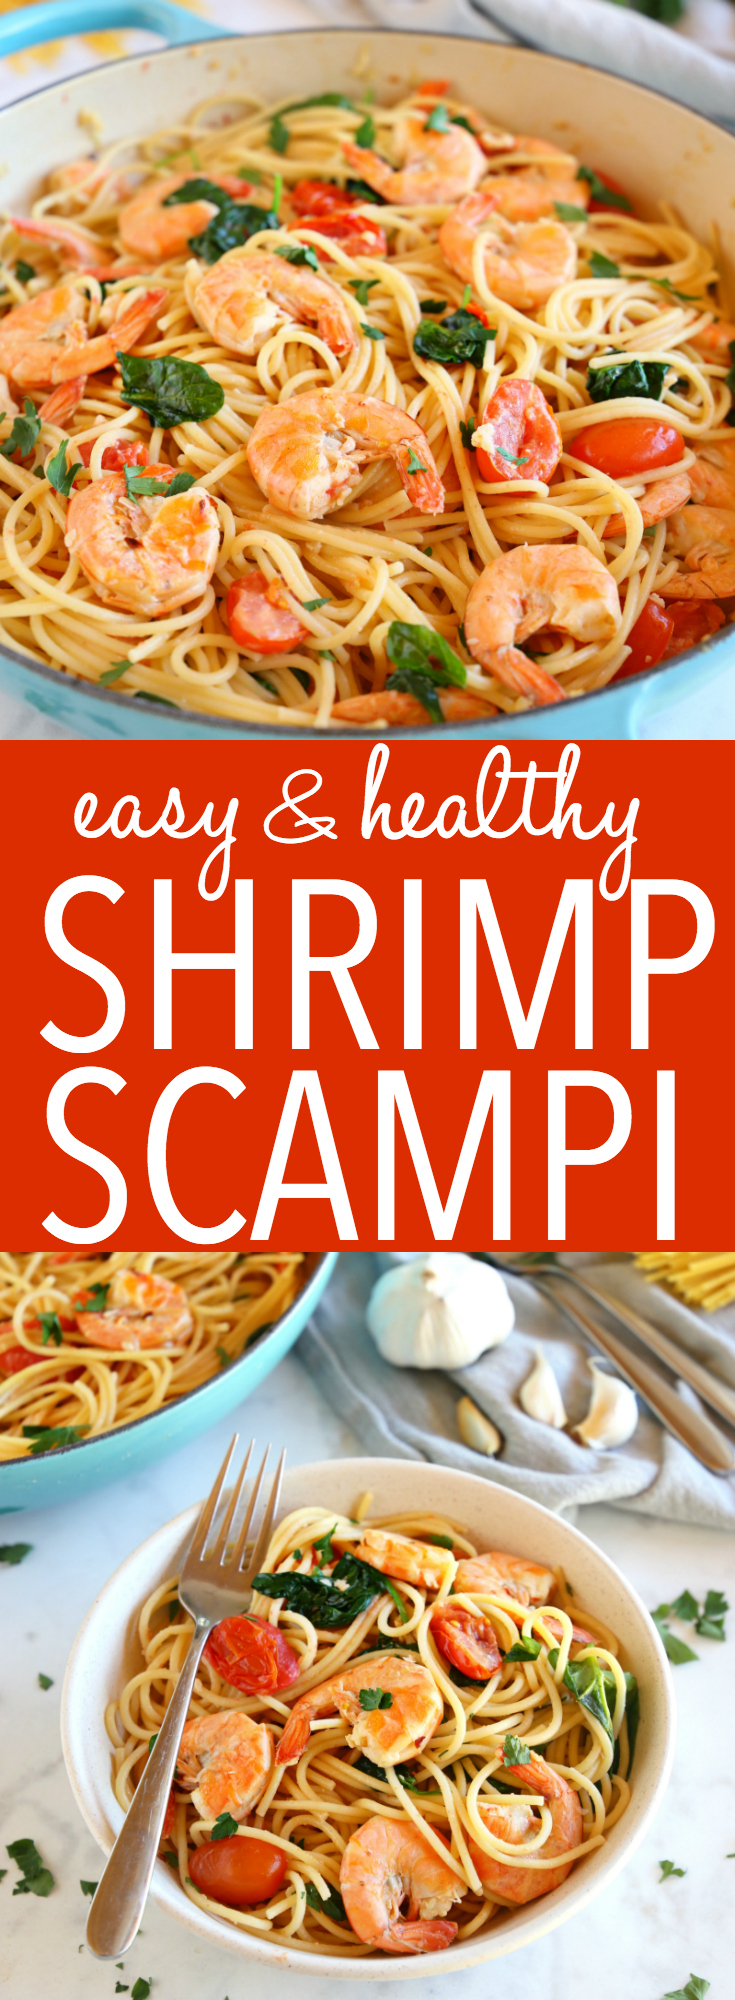 This Easy Healthy Shrimp Scampi is a delicious and healthy weeknight meat featuring fresh shrimp, pasta and veggies in a light-tasting garlic cream sauce! Recipe from thebusybaker.ca! #shrimpscampi #easyshrimppasta #healthyshrimppasta #healthyshrimpscampi via @busybakerblog